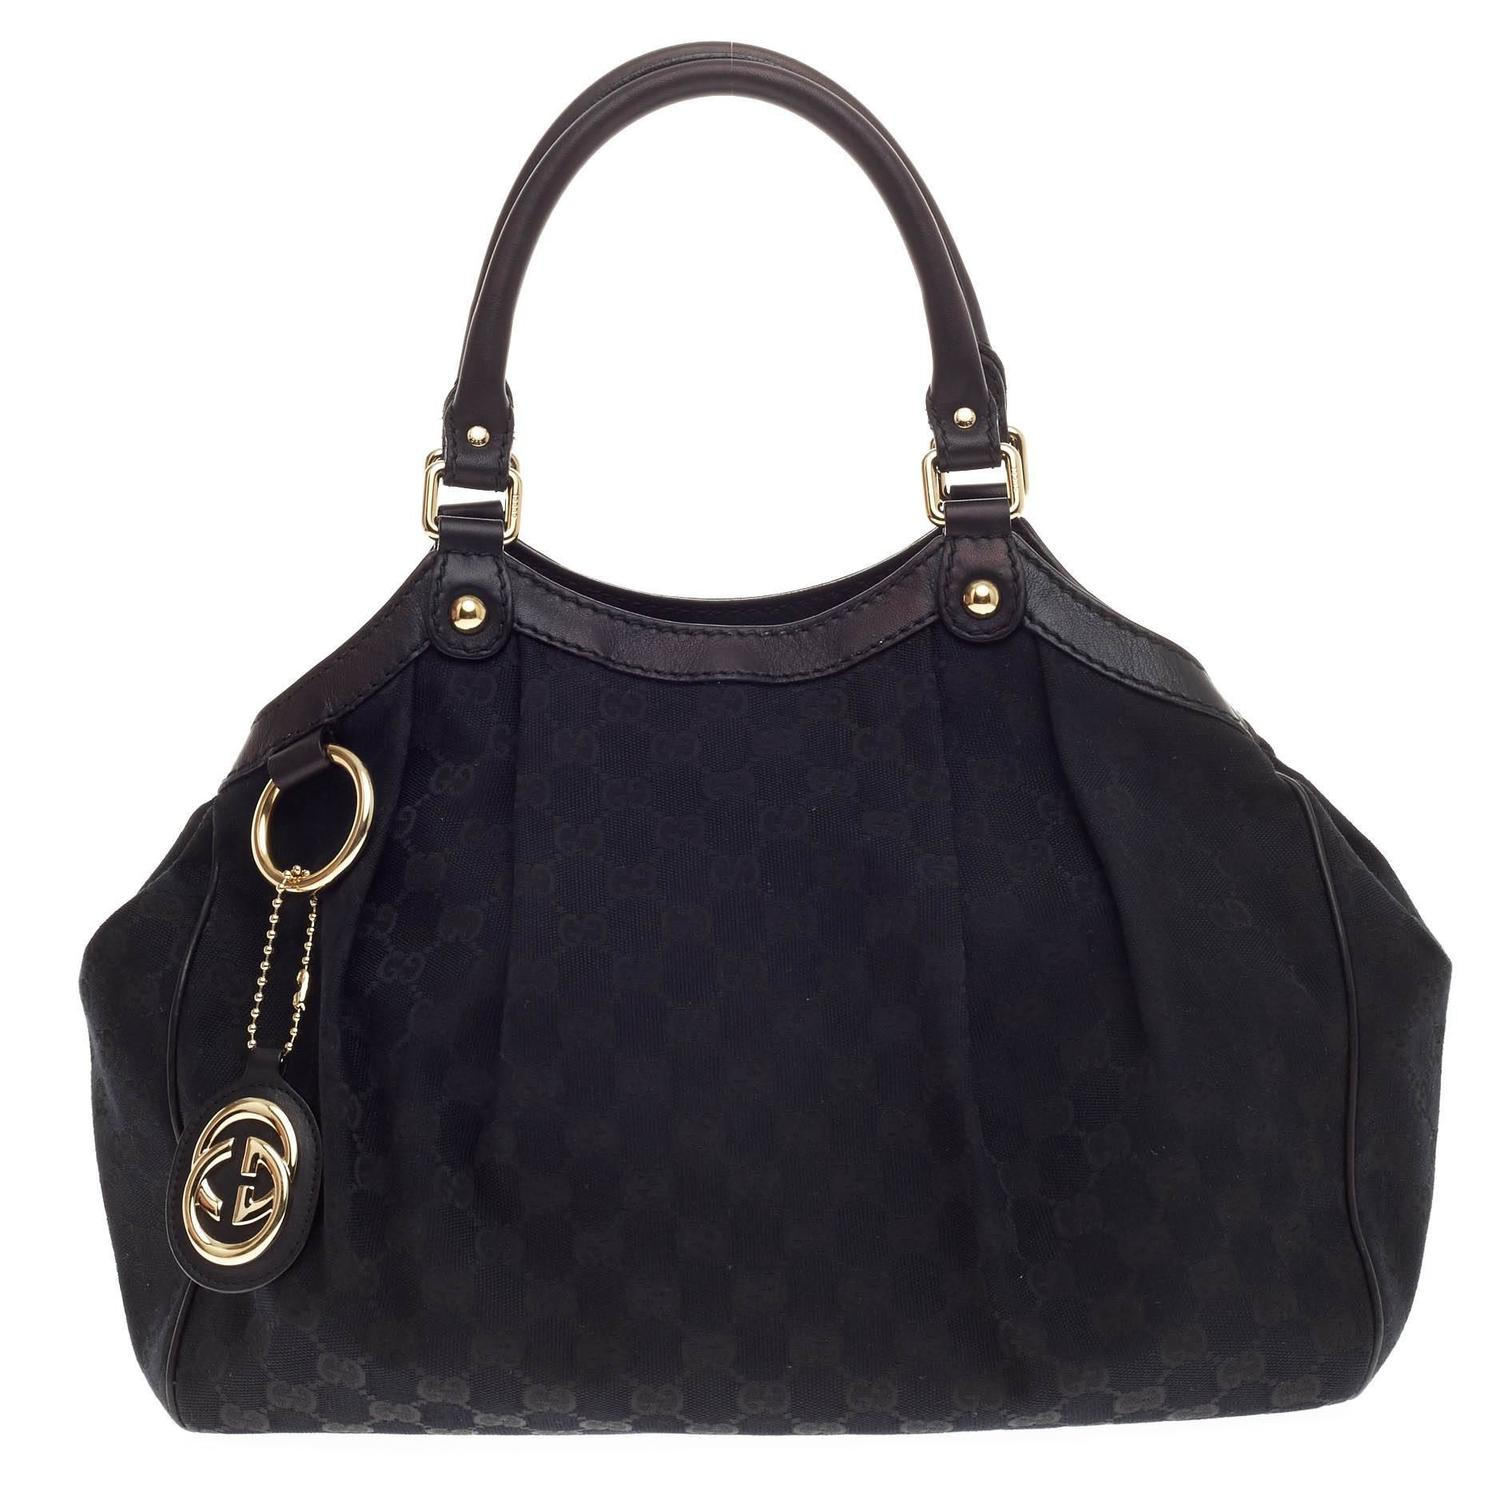 112f3a52ab5a76 Gucci Sukey Medium Tote Black Canvas | Stanford Center for ...